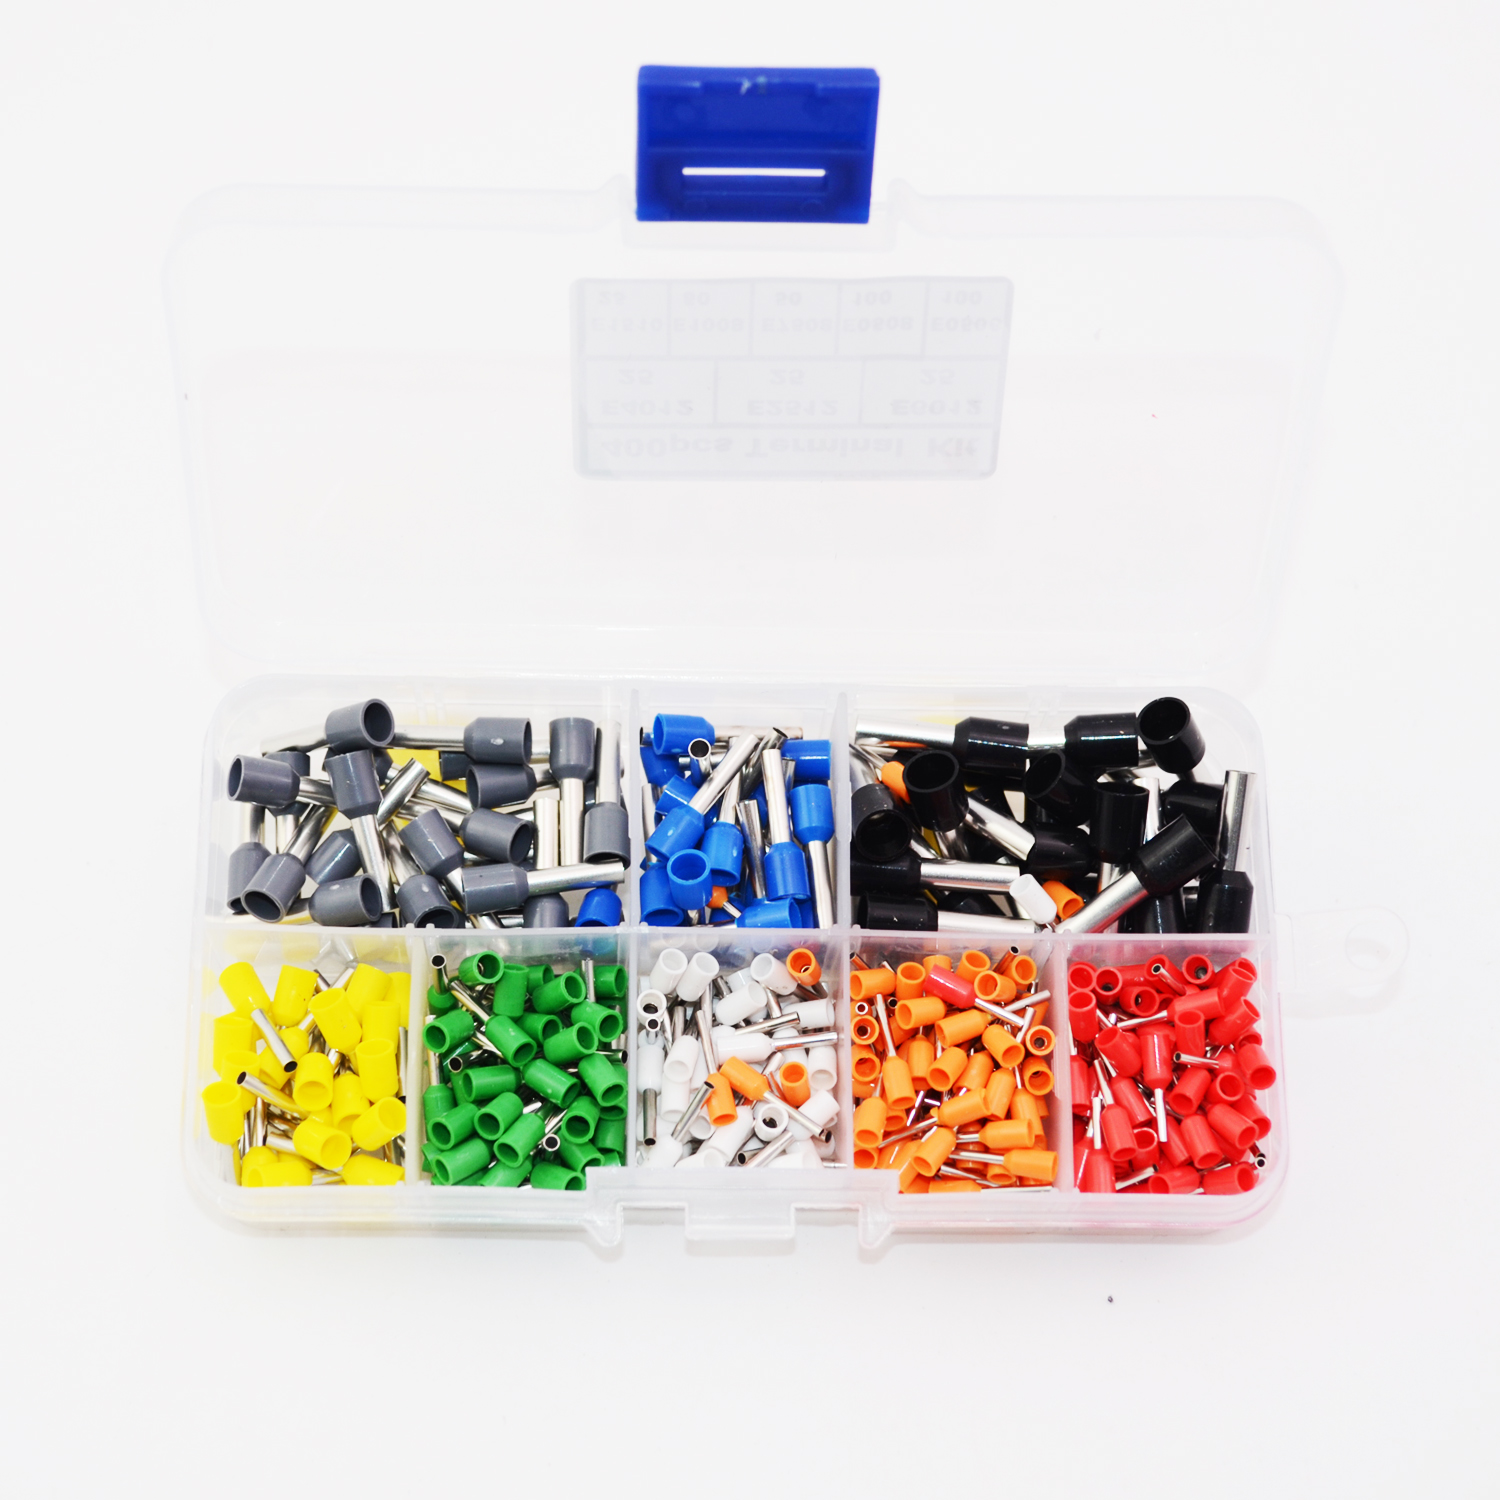 Hot sale 400pcs/set Insulated Cord Pin End Terminal Ferrules Kit Set Wire Copper Crimp Connector AWG 22 - 10 190pcs lot 6 different crimp terminal ring connector kit set wire copper crimp connector insulated cord pin end terminal